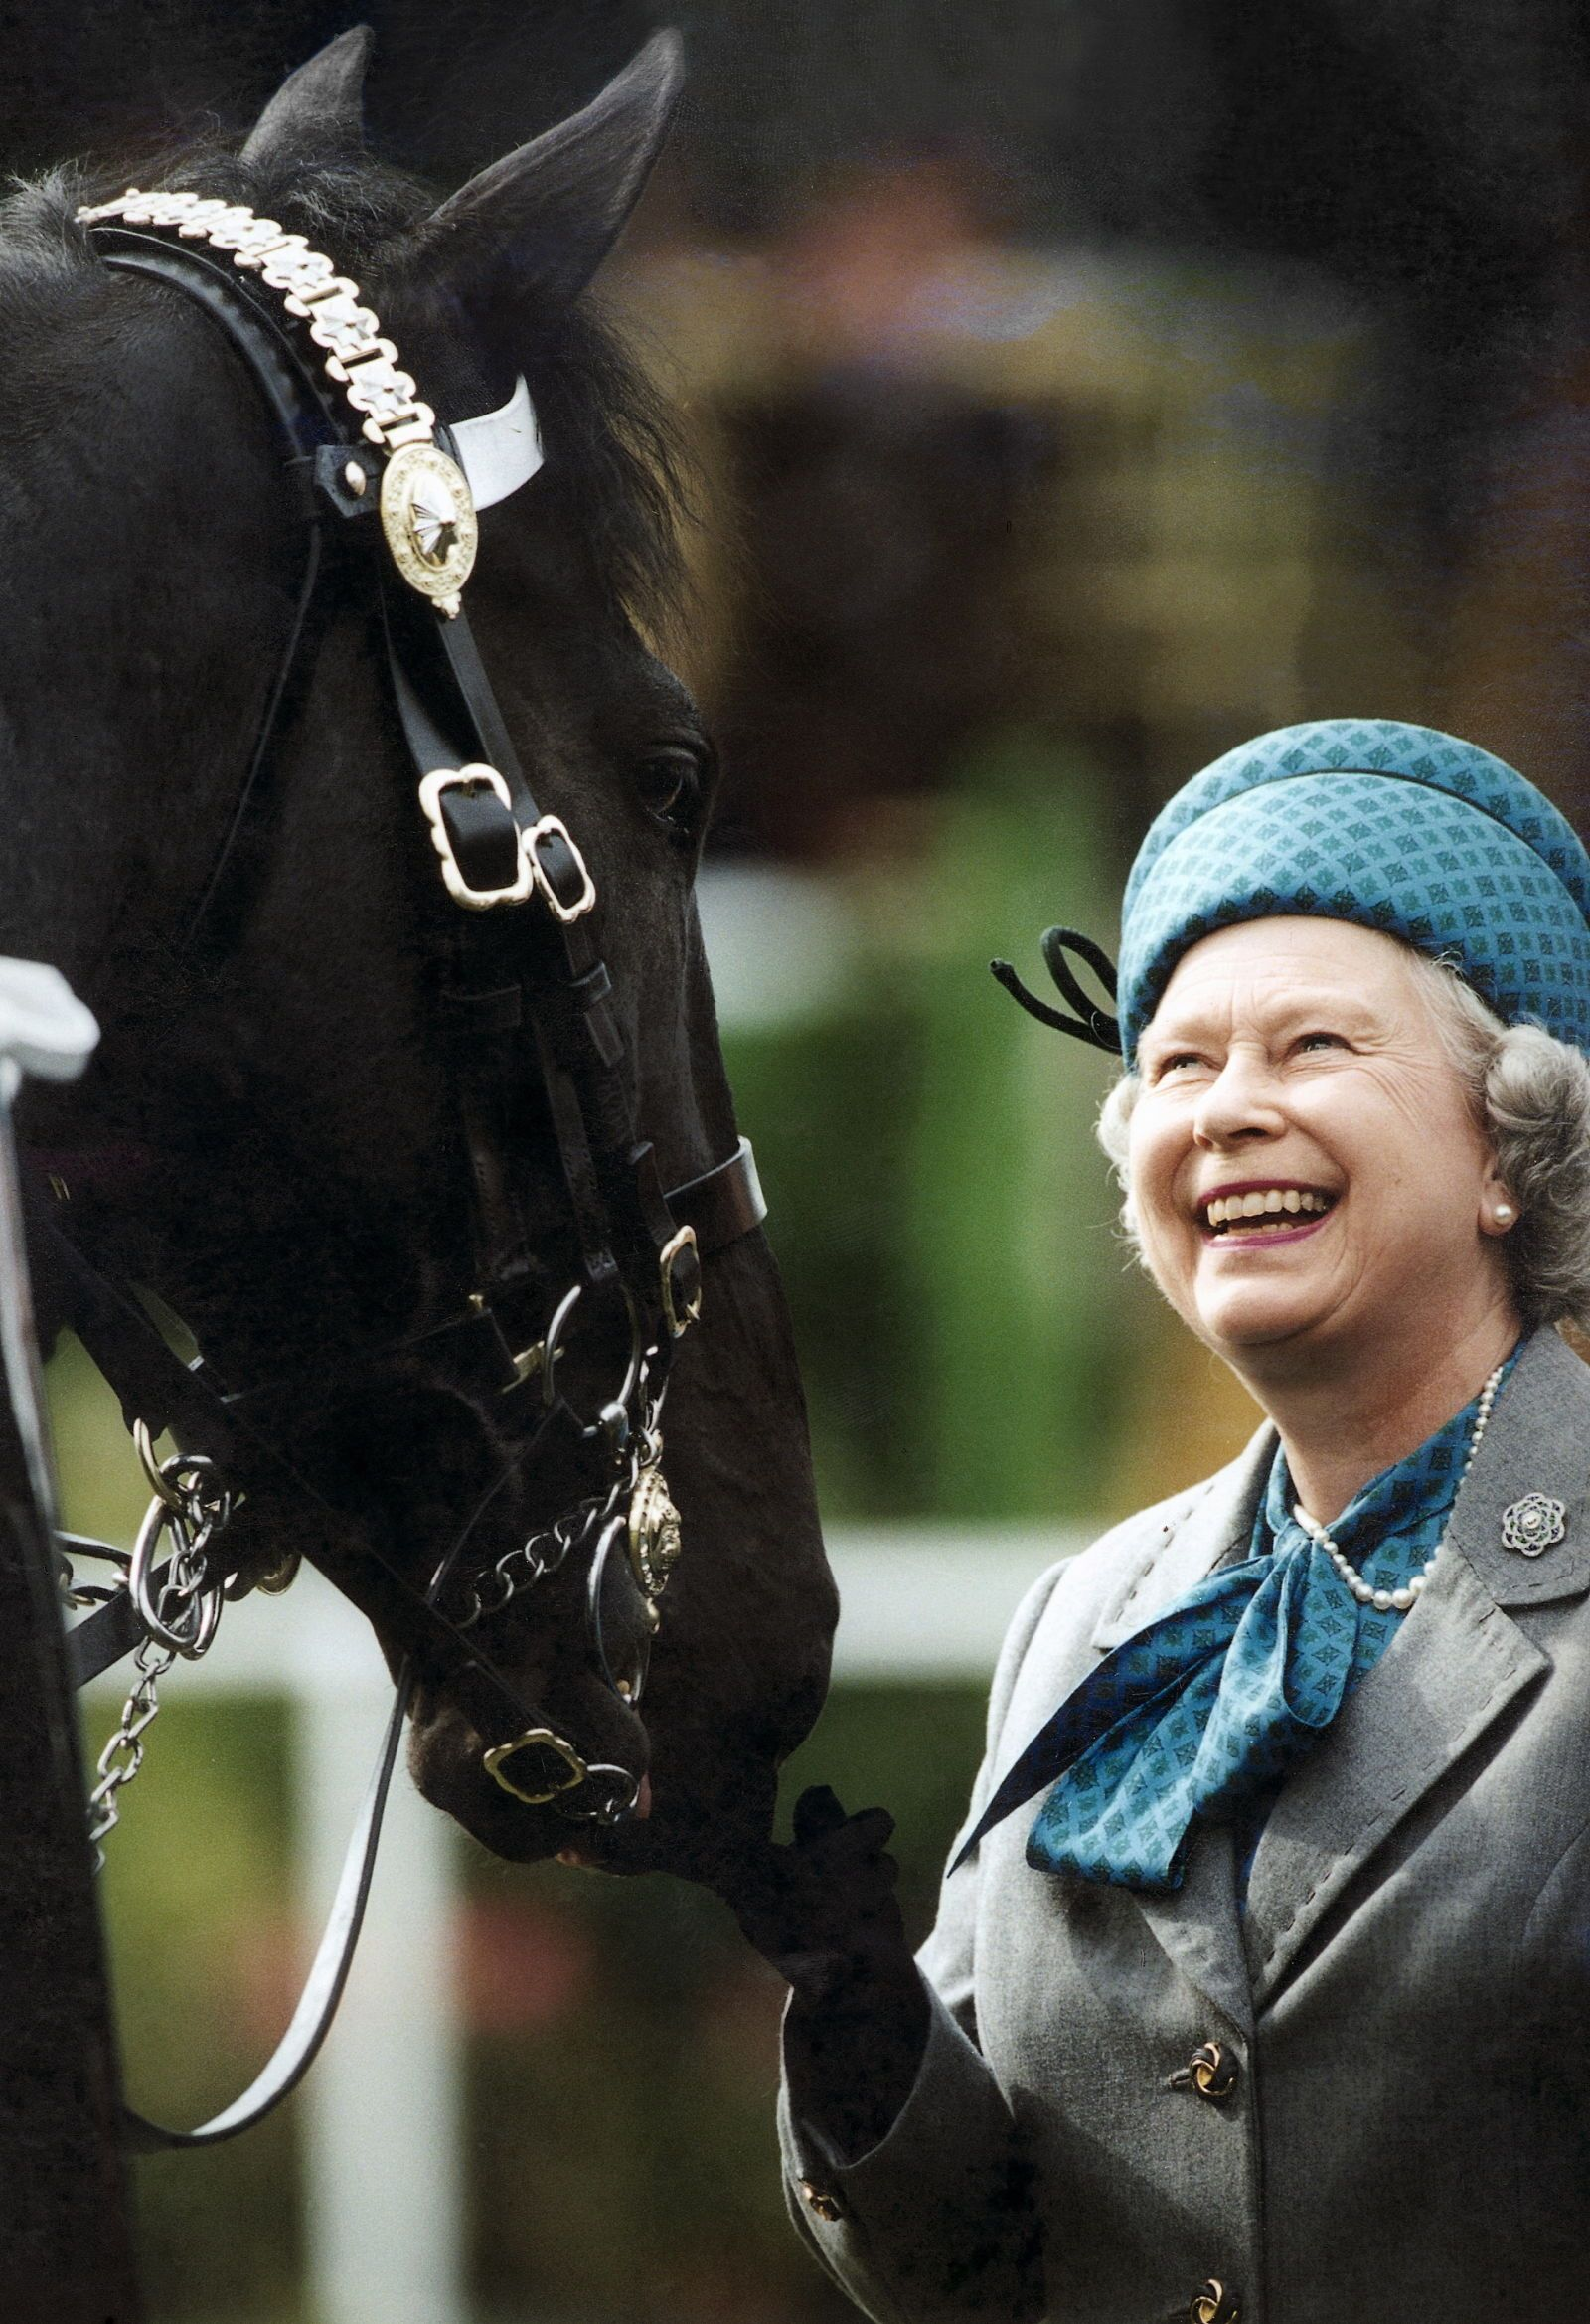 New Photo Shows Queen Elizabeth Horseback Riding Like a Boss at 90  - CountryLiving.com